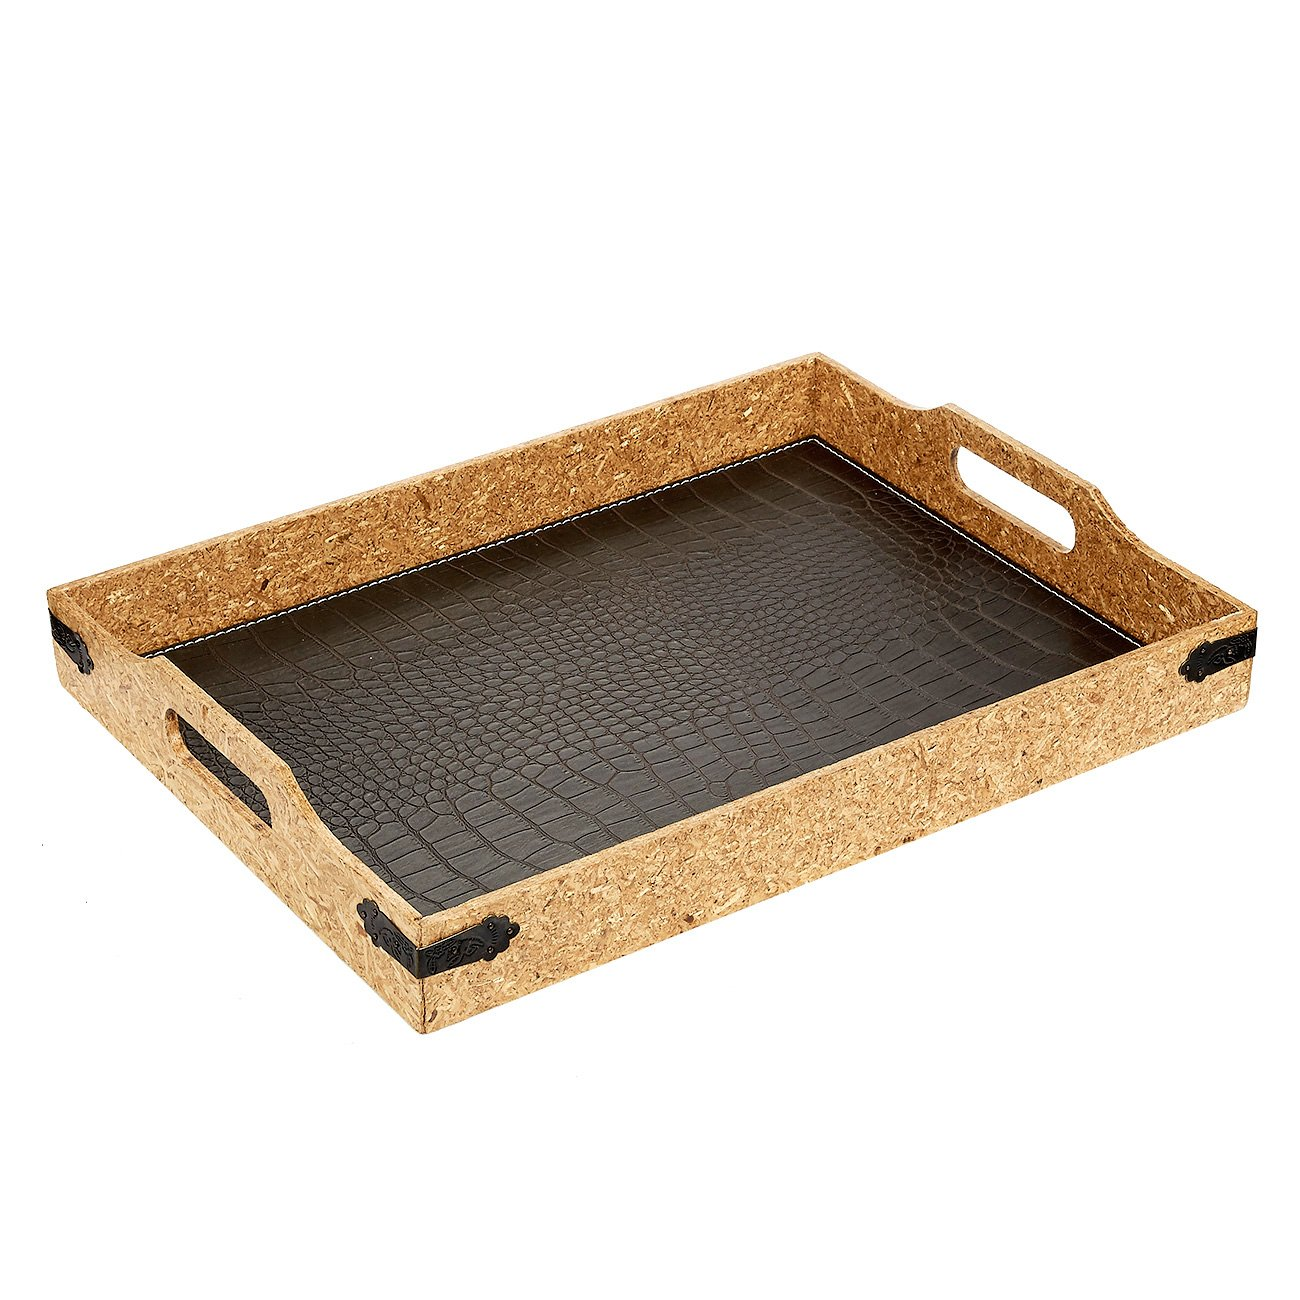 Juvale Serving Tray - Breakfast In Bed Decorative Cork Tray with Handles, Alligator Leatherette, 15.7 x 11.8 x 2.5 Inches